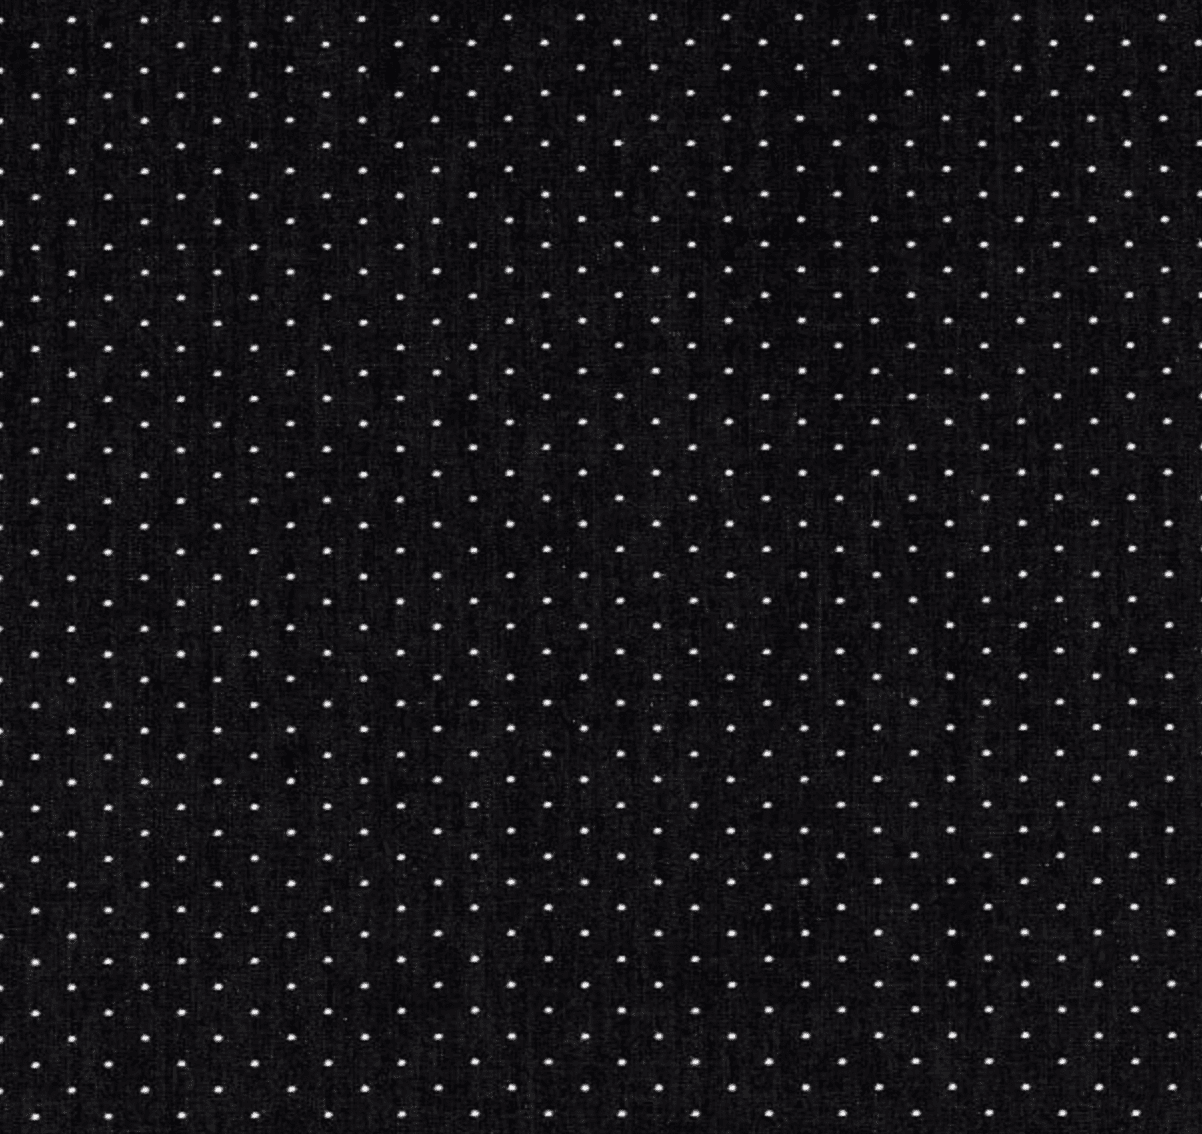 Image of black chambray fabric with white polka dots.